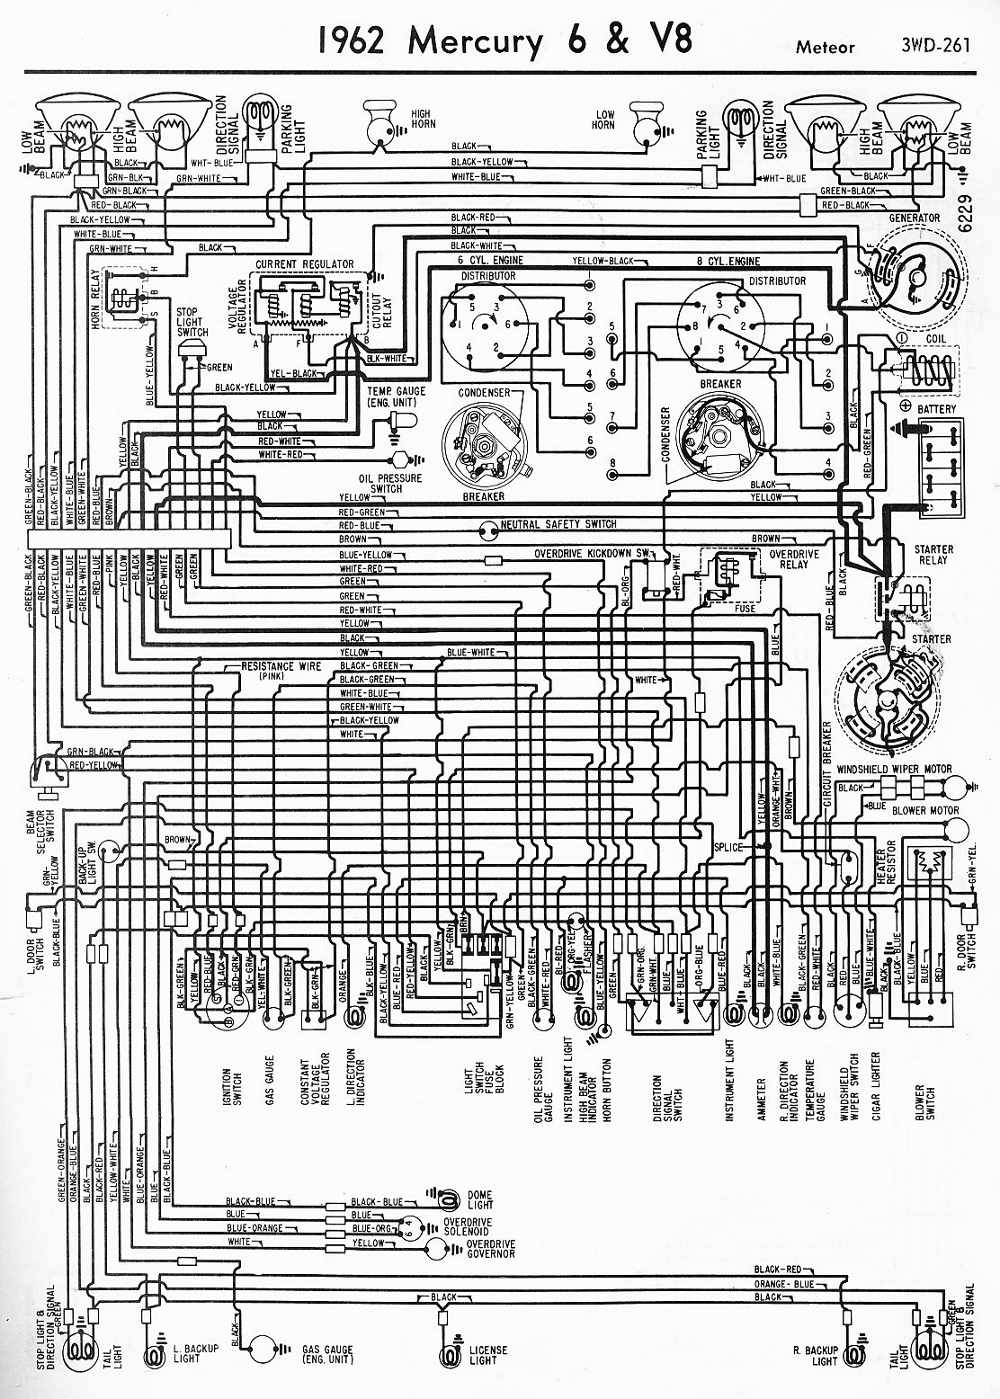 Enchanting How To Wiring Diagram Msd 6al For 4age16v Images - Wiring ...